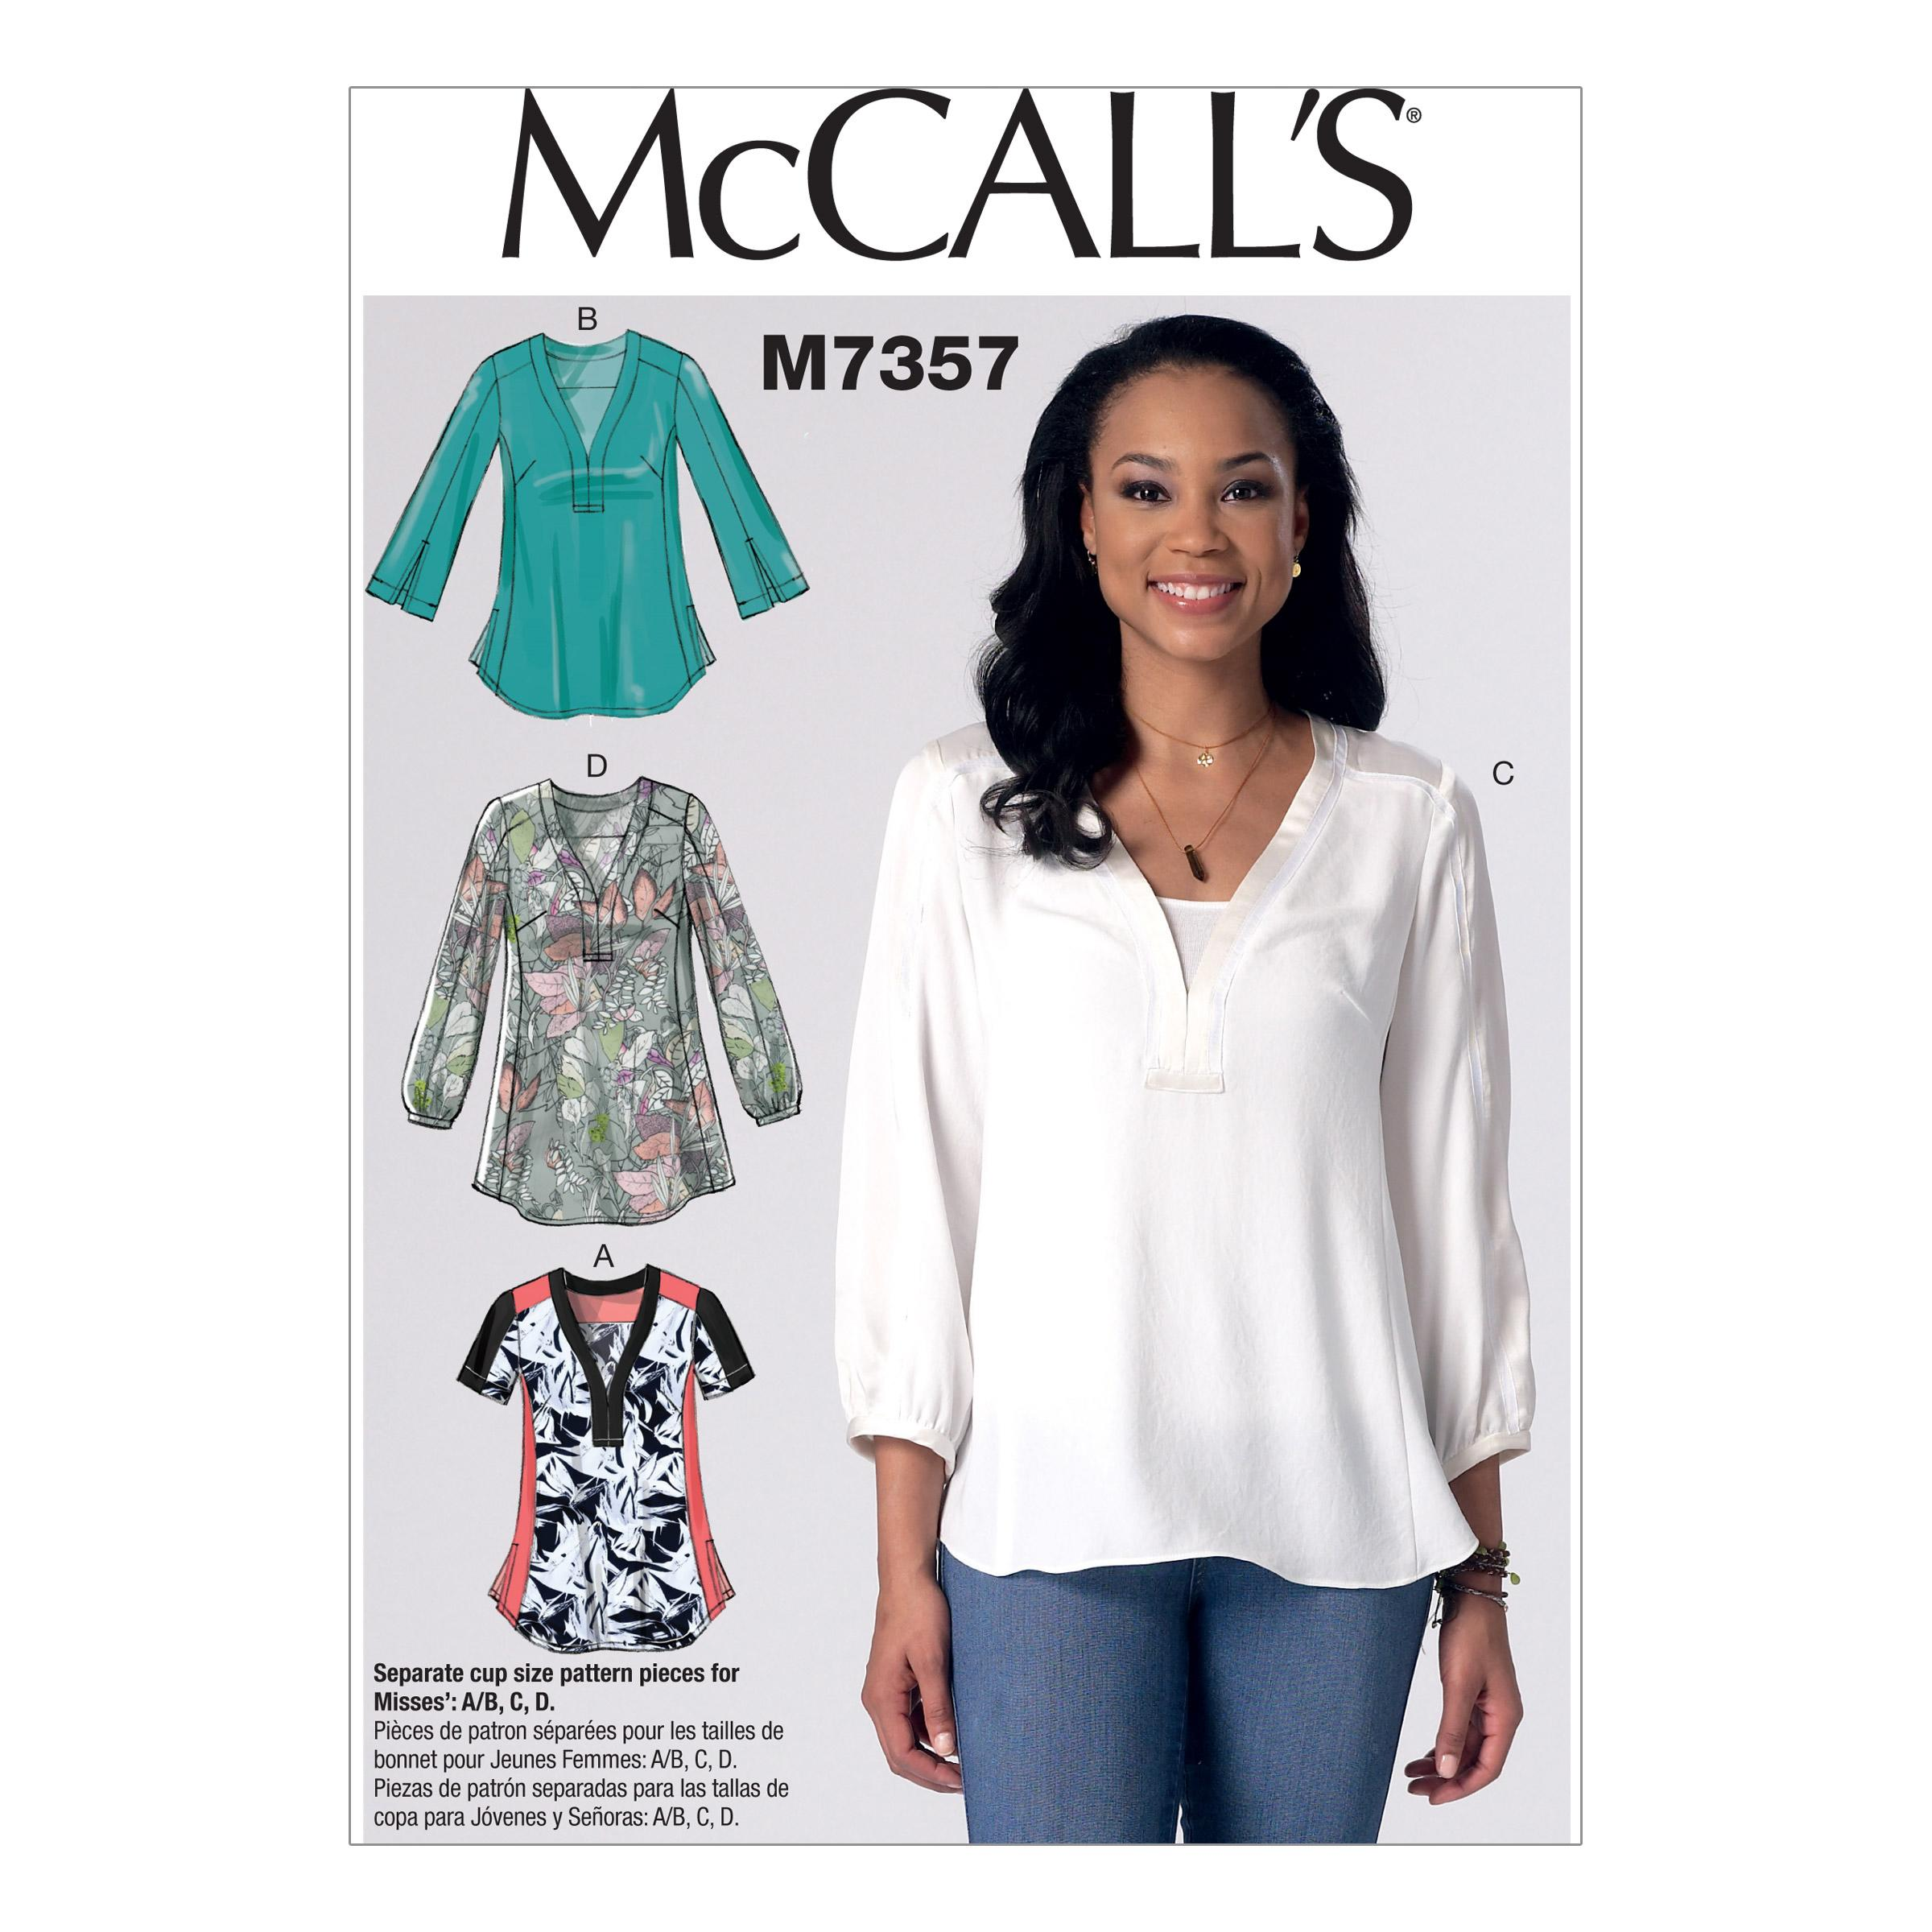 McCalls M7357 A/B, C & D Cup Sizes, Tops/Tunics